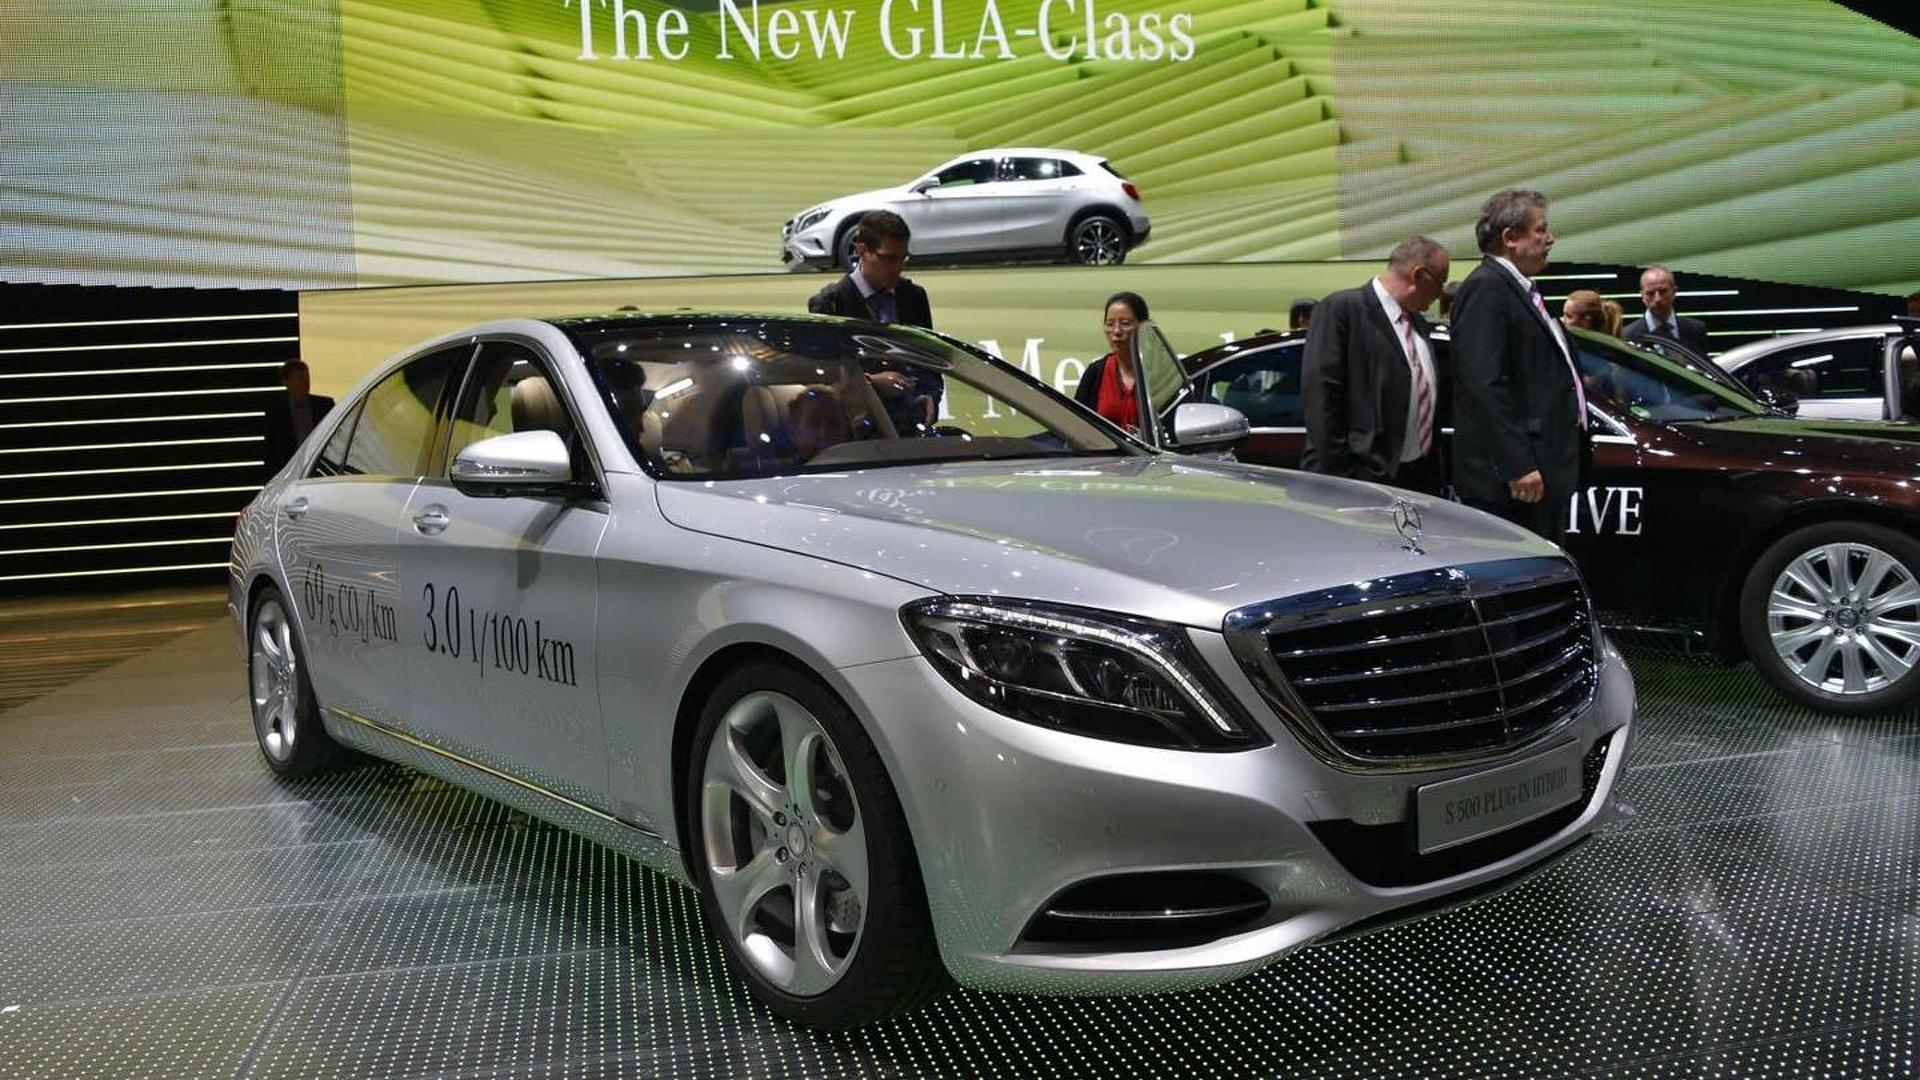 2014 Mercedes-Benz S500 Plug-In Hybrid arrives at IAA